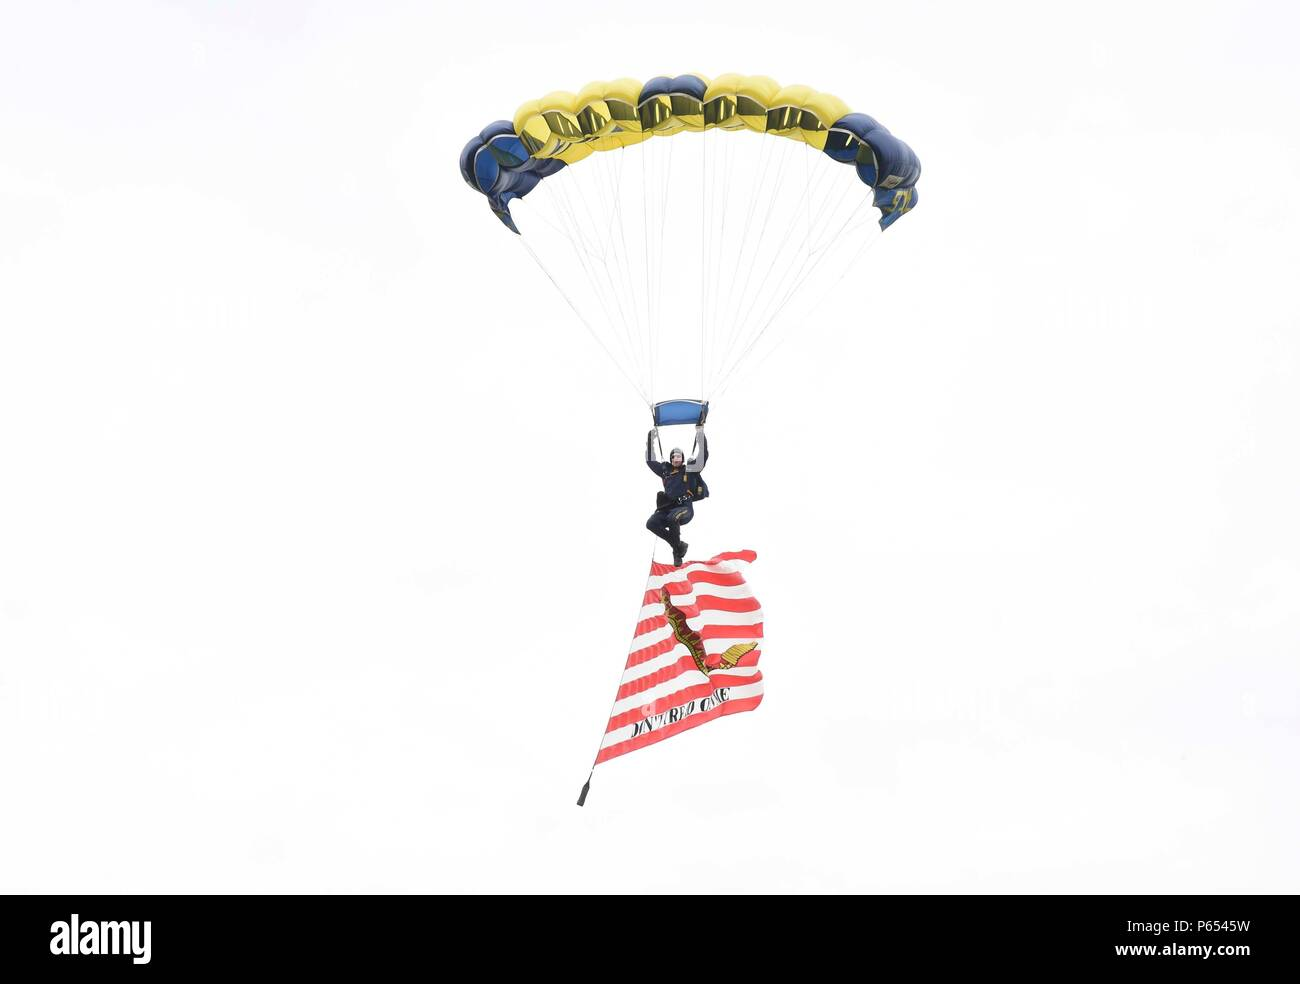 160414-N-VY375-034  MARYVILLE, Tenn. (April 14, 2016) Lt. (SEAL) Duncan Hamilton, member of the U.S. Navy Parachute Team, the Leap Frogs, flies the 'Don't Tread On Me' flag as prepares to land on the field at Clayton Bradley Academy as part of Knoxville Navy Week. The Navy Week program is designed to raise awareness about the Navy in areas that traditionally do not have a naval presence and include community relation projects, speaking engagements, and media interviews with flag hosts and area Sailors. (U.S. Navy Photo by Special Warfare Operator 1st Class Brandon Peterson/Released) - Stock Image